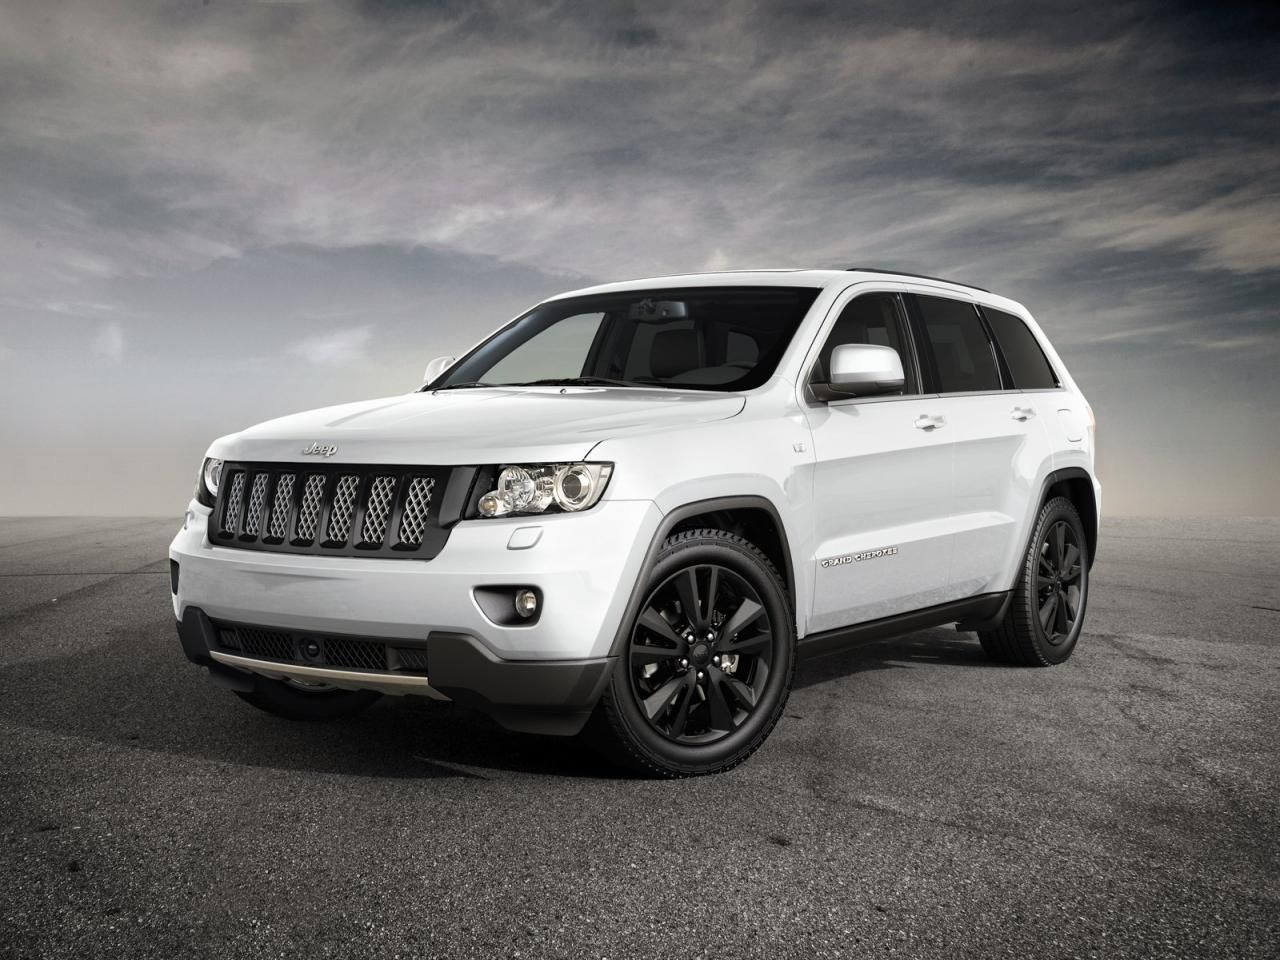 Jeep Grand Cherokee Jeep Grand Cherokee Srt Jeep Grand Cherokee Sport Jeep Grand Cherokee 2012